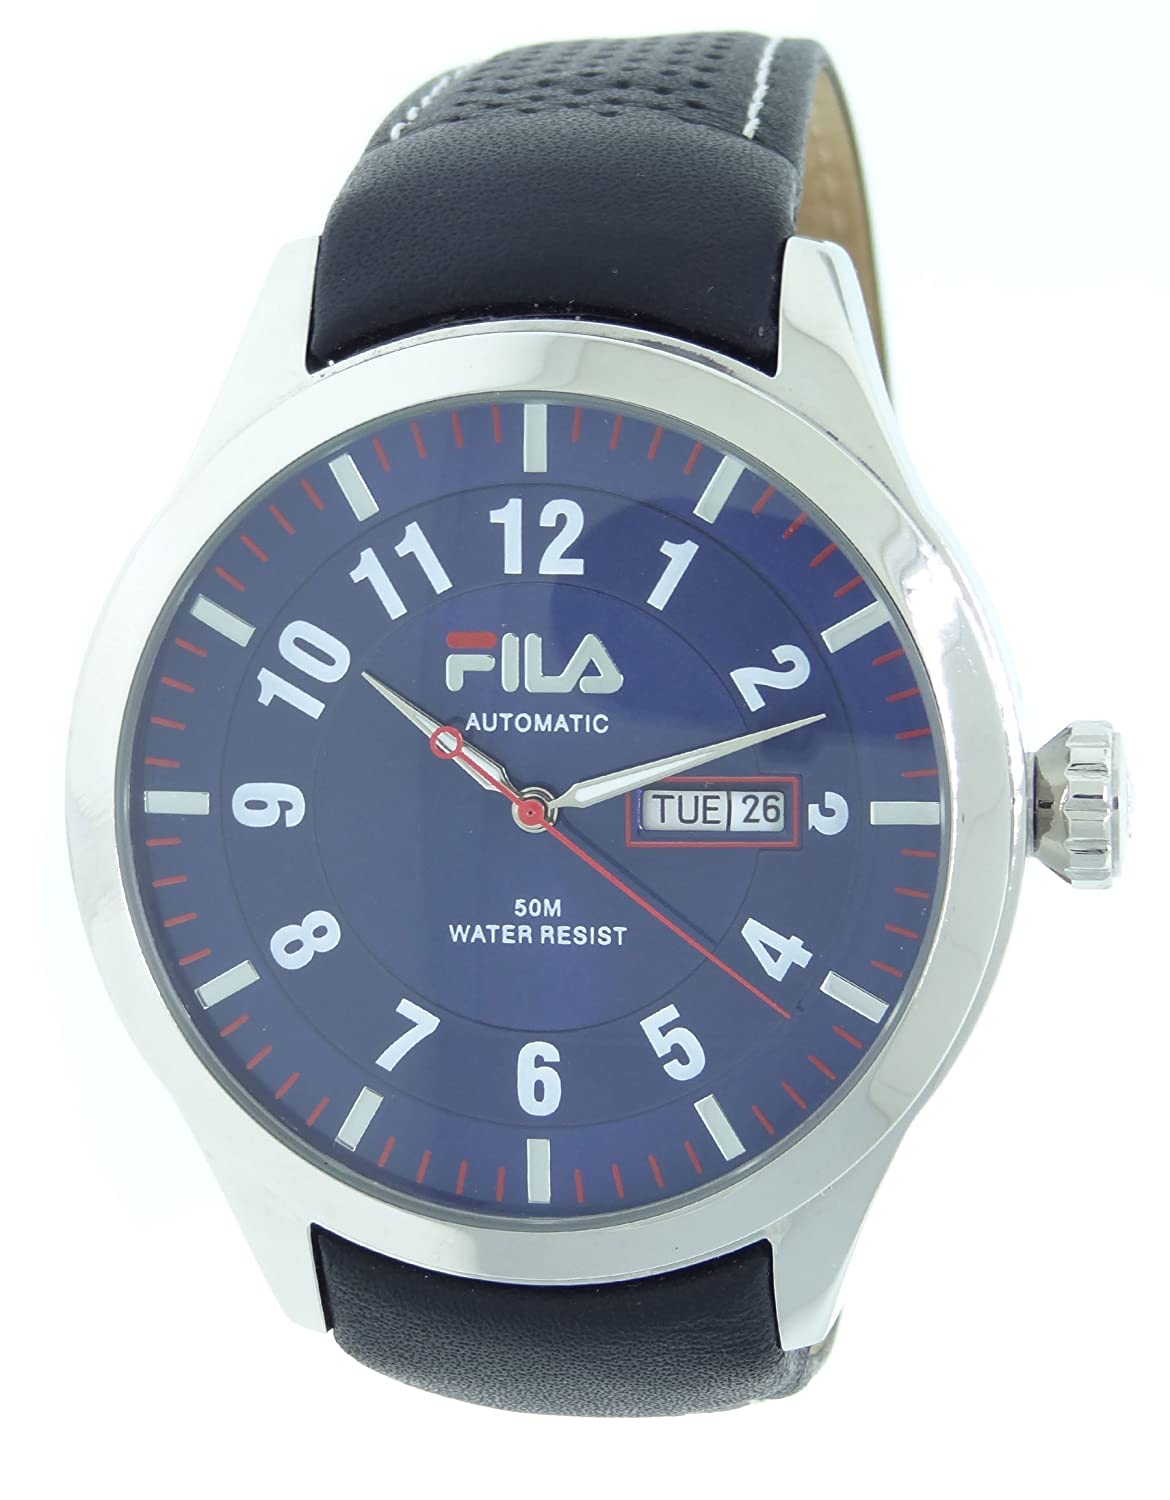 Genuine FILA AUTOMATIC WATCH (fa0796-05)